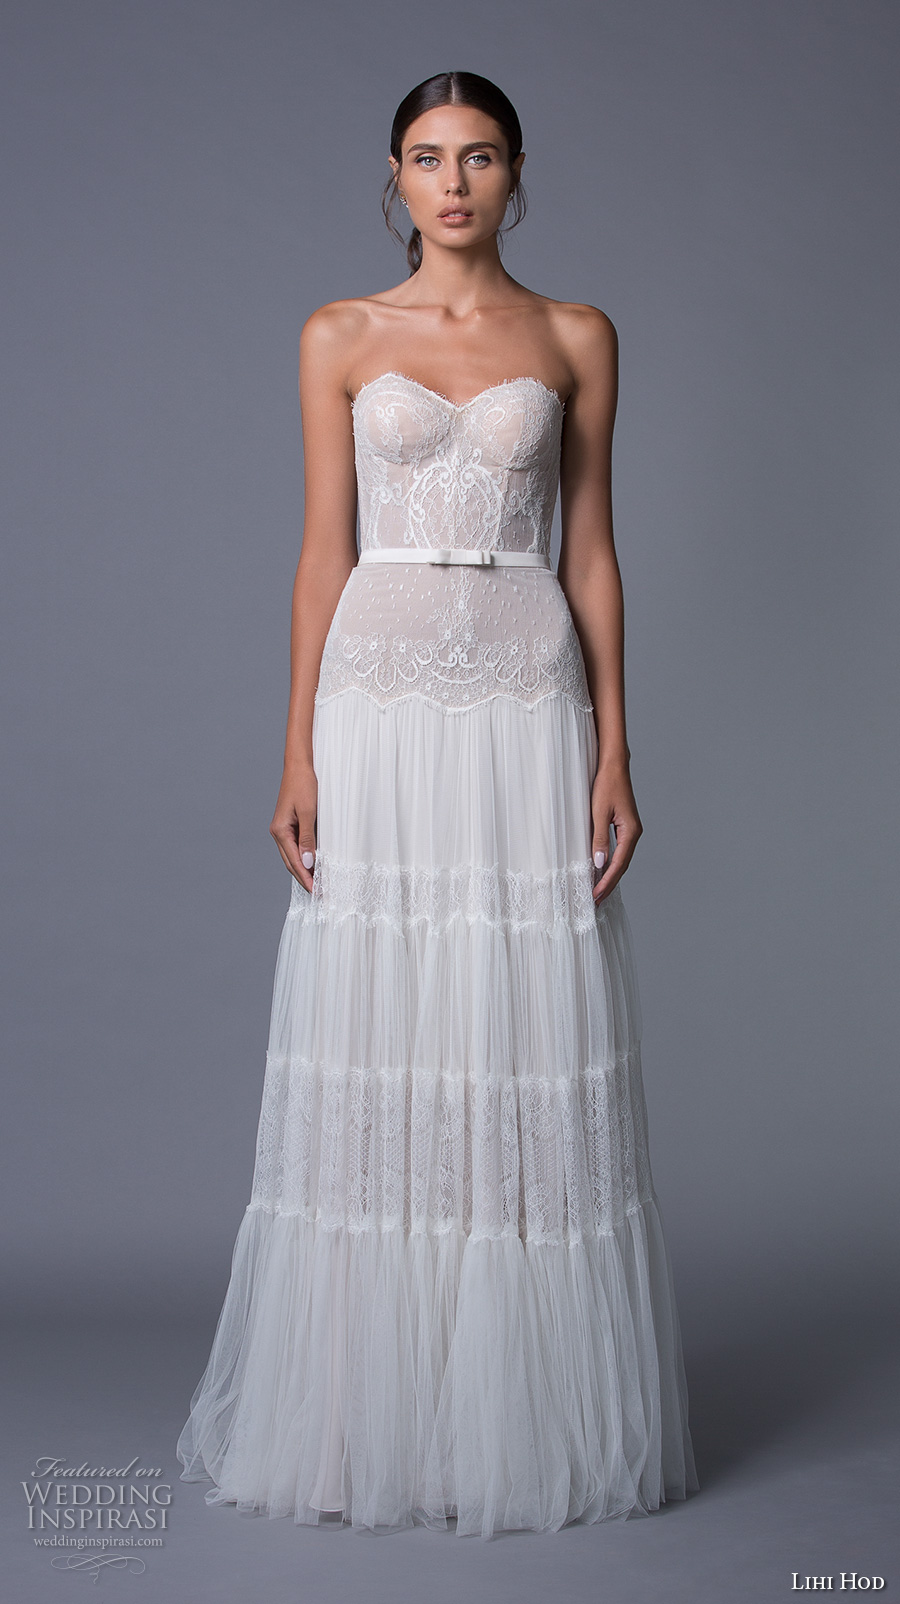 Short Casual Beach Wedding Dresses